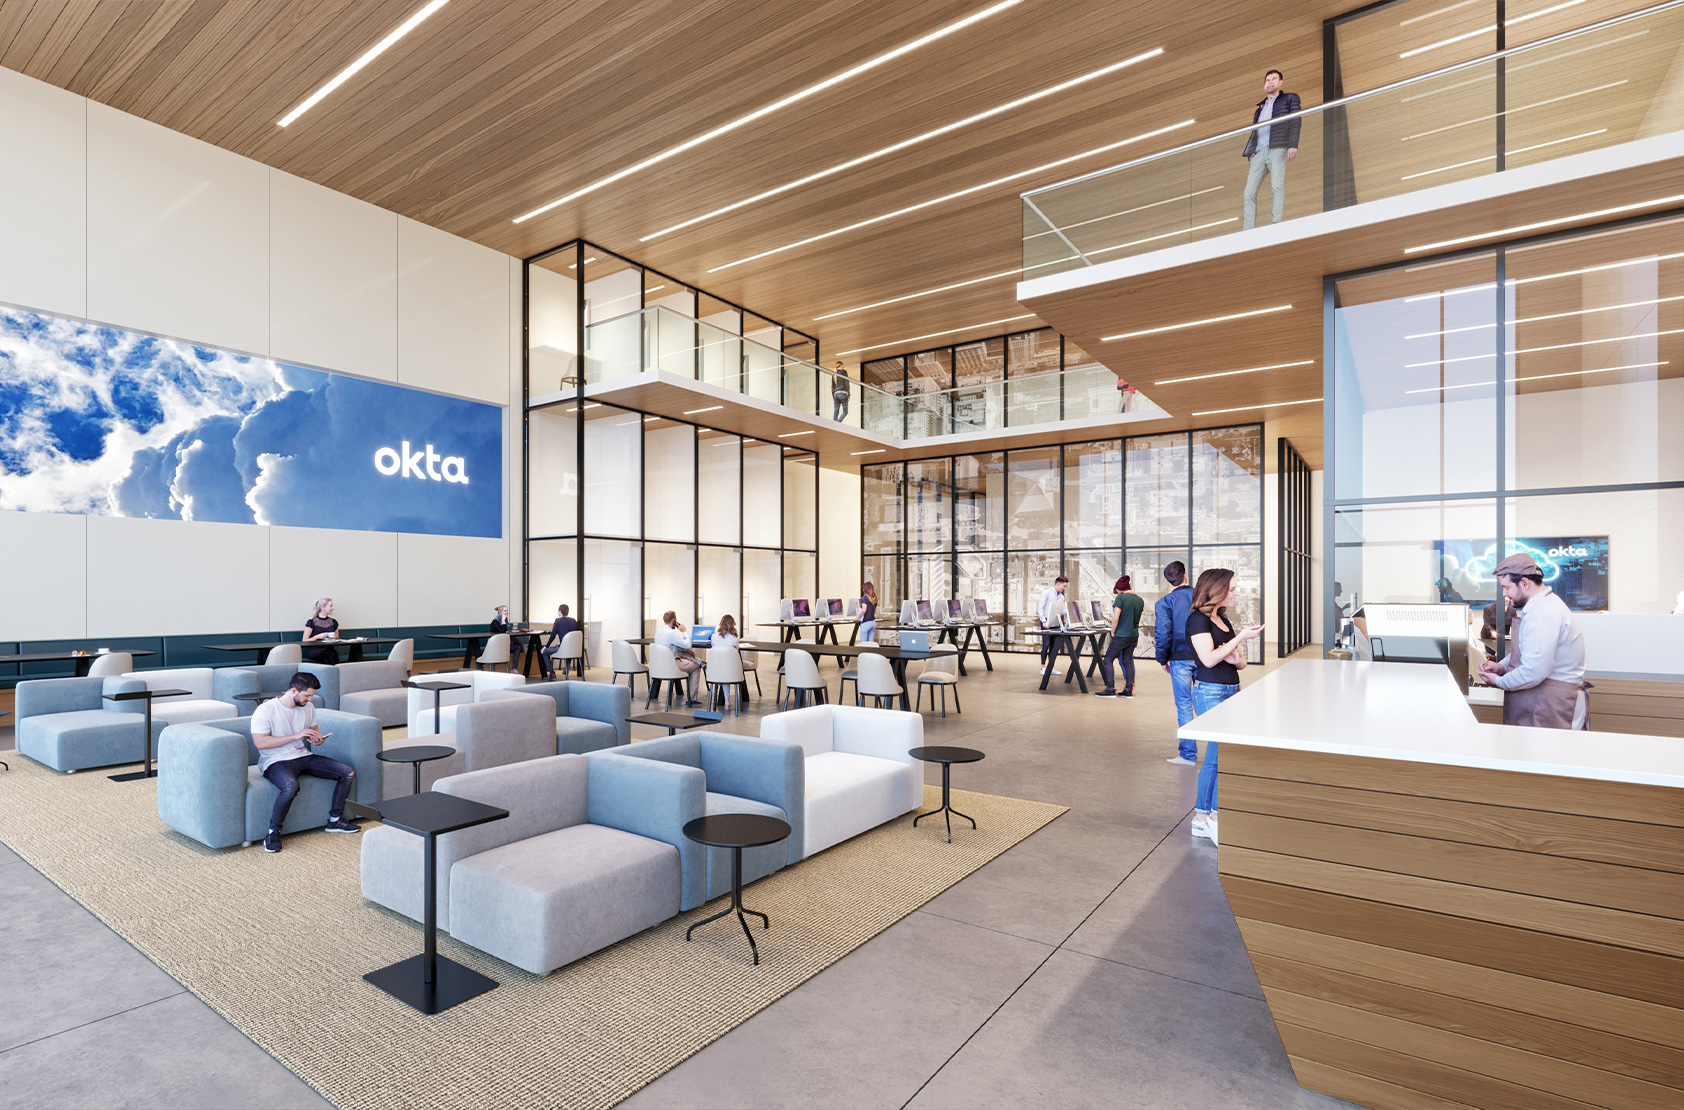 Okta - Workplace Strategy